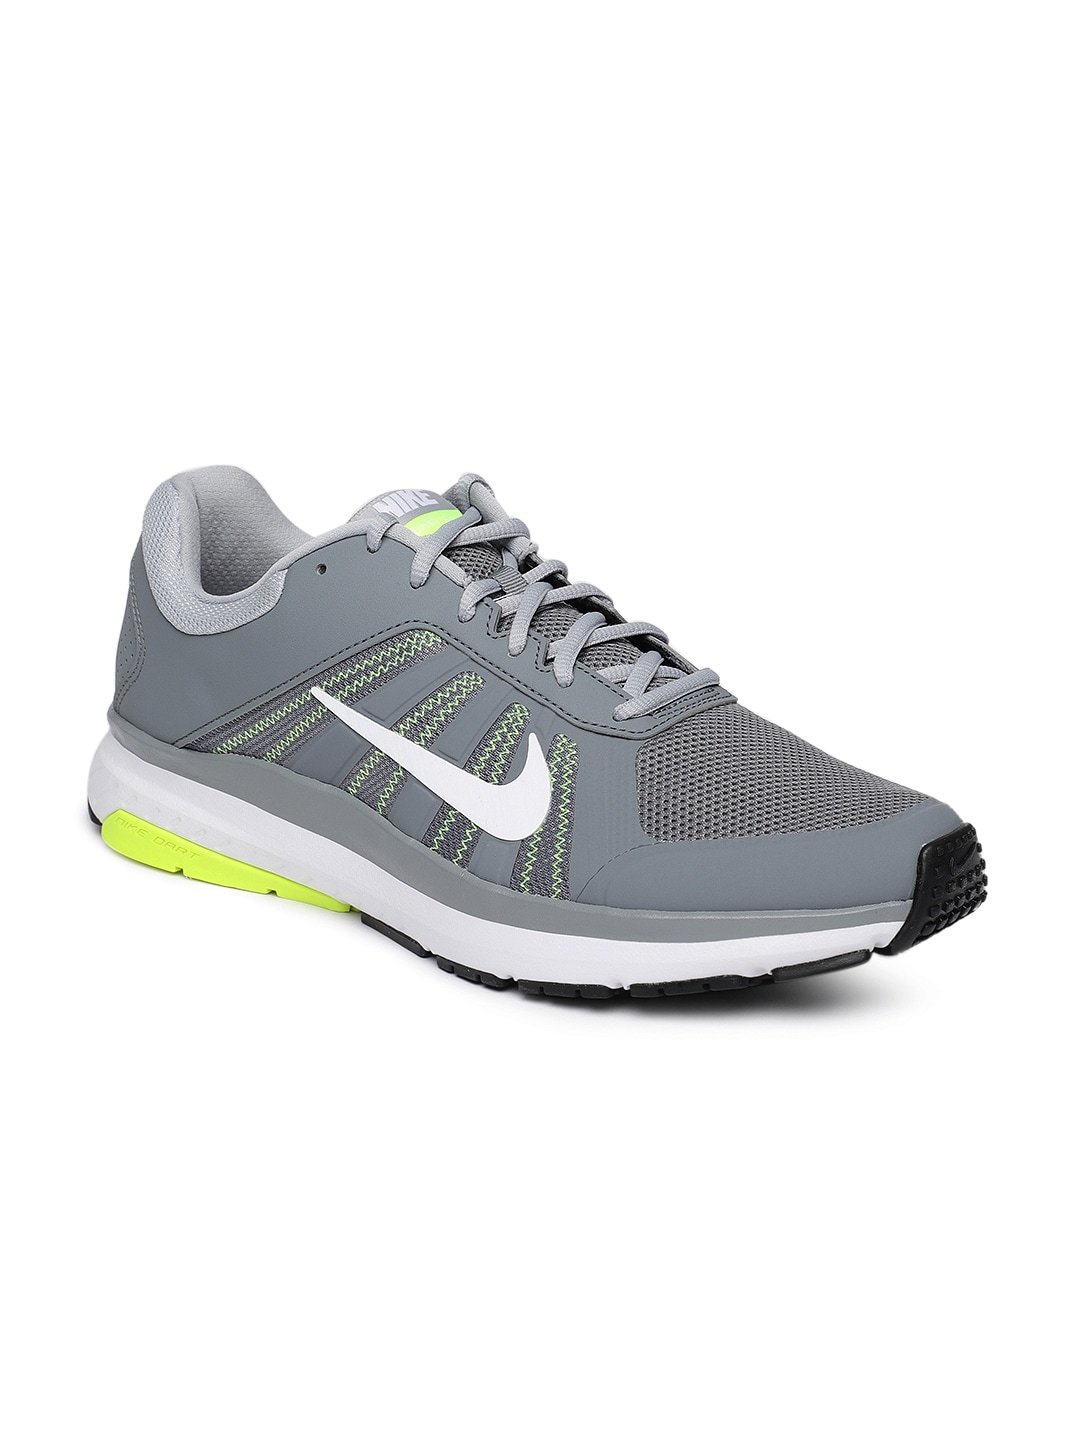 timeless design cd4de e6ff1 Nike Shoes - Buy Nike Shoes for Men, Women   Kids Online   Myntra